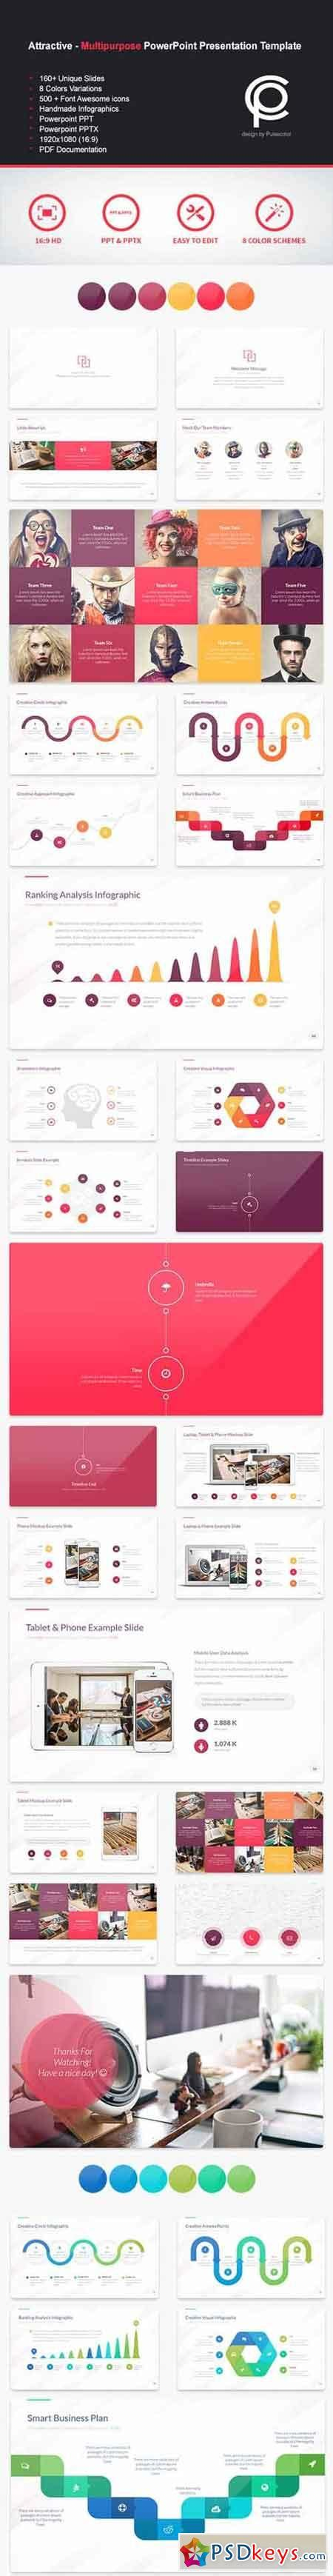 Attractive Multipurpose Powerpoint Presentation 11778342 Attractive Powerpoint Presentation